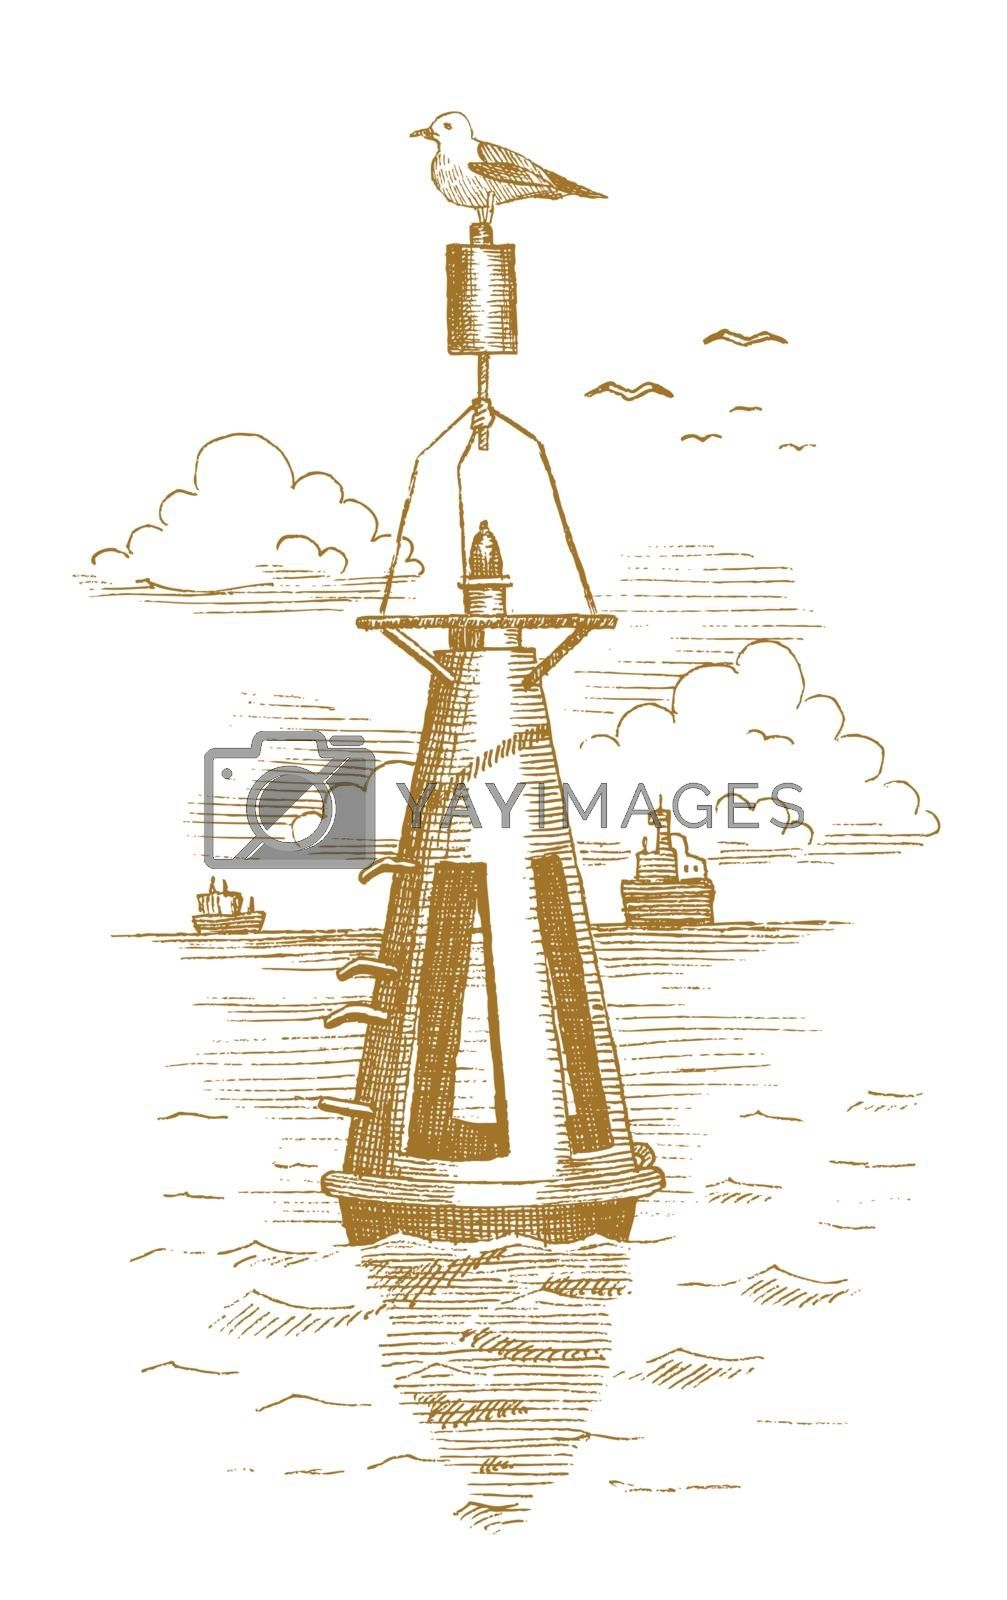 Buoy in the sea drawn by hand